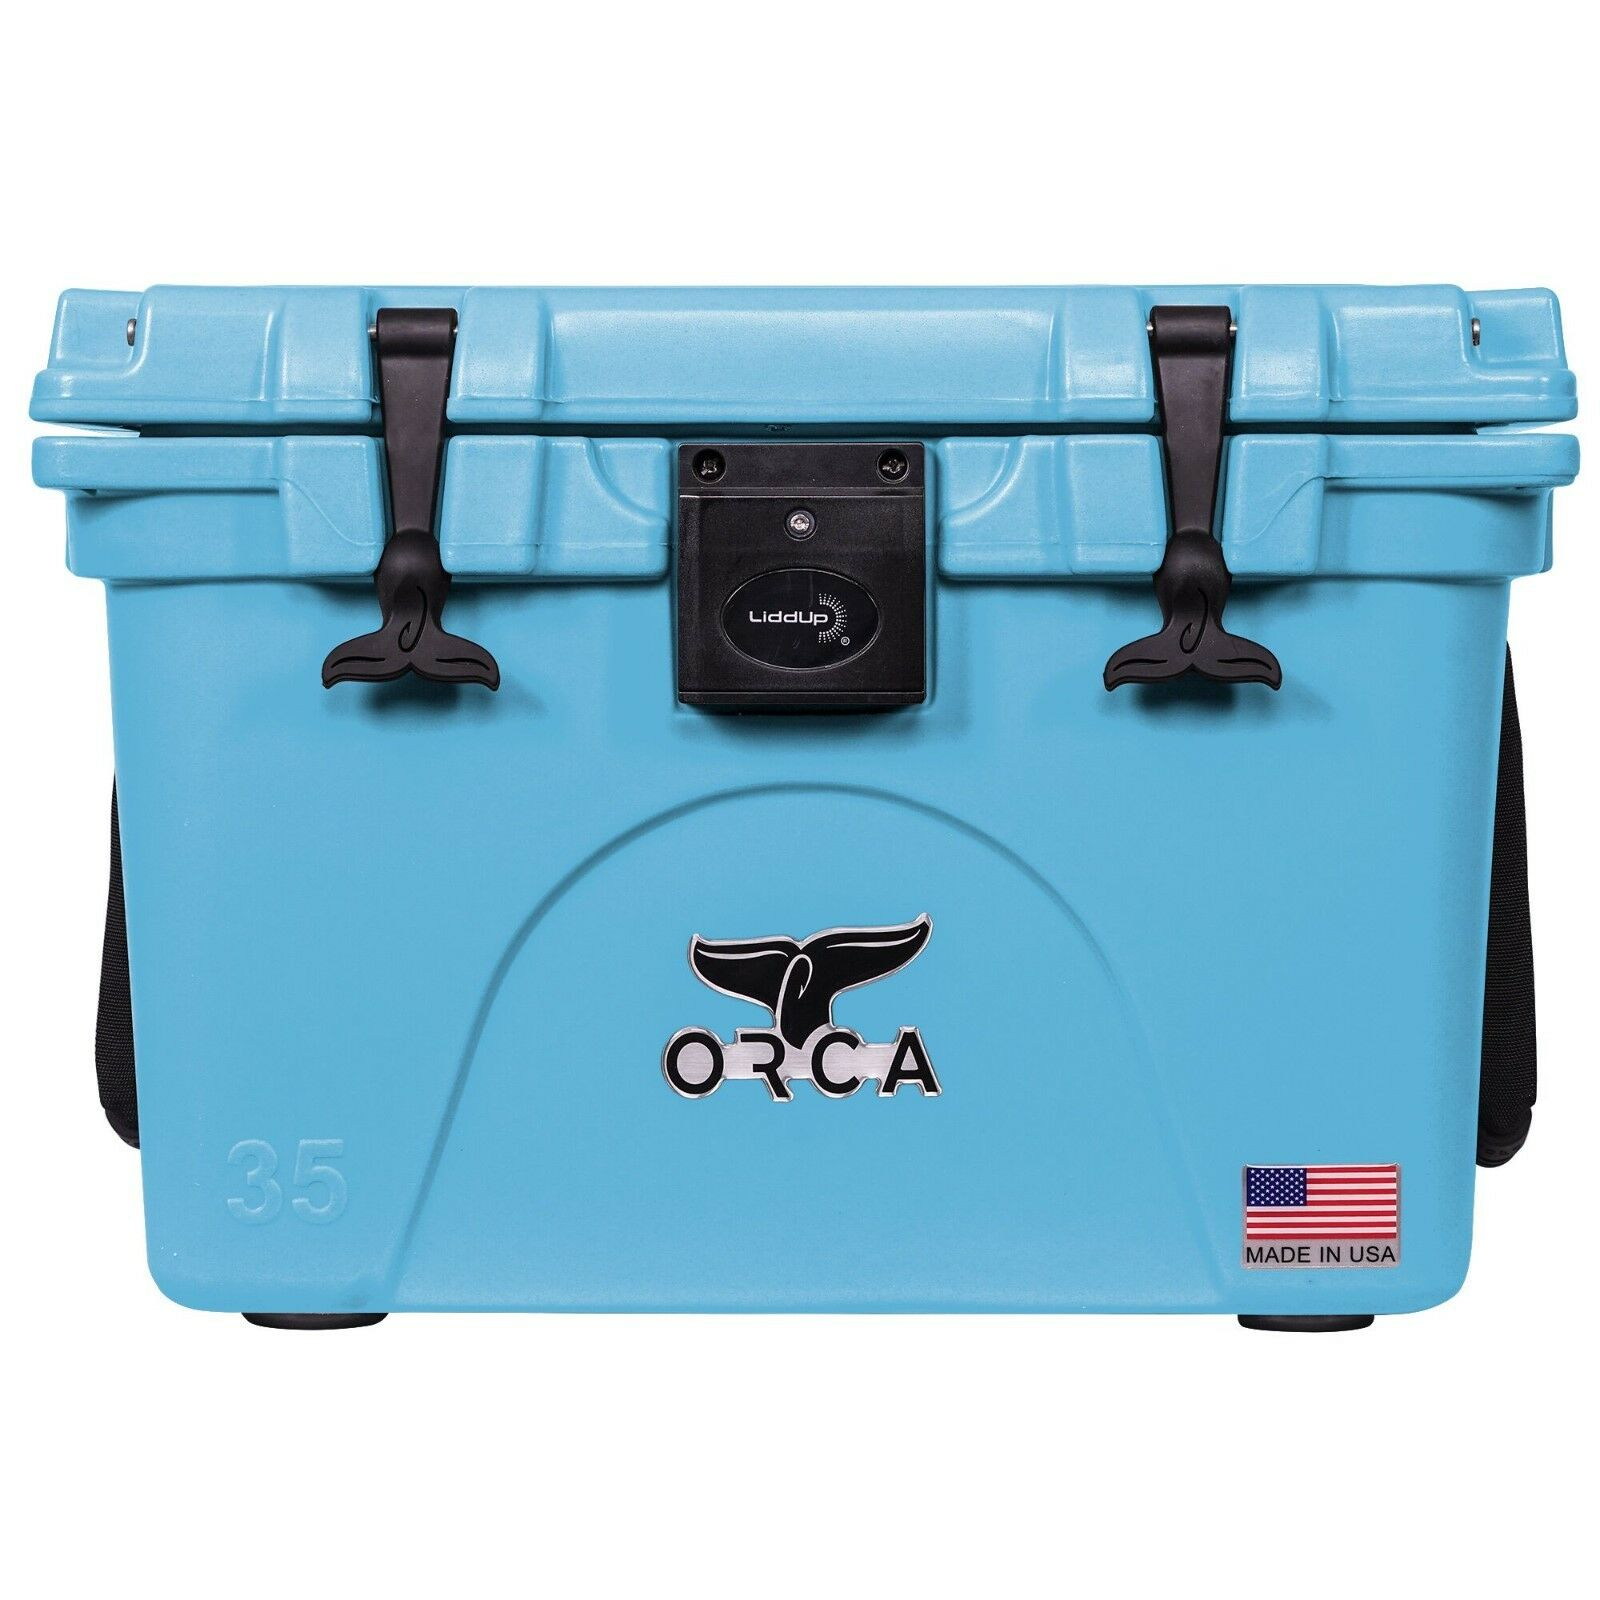 ORCA LIGHT blueE 35QT LIDDUP COOLER